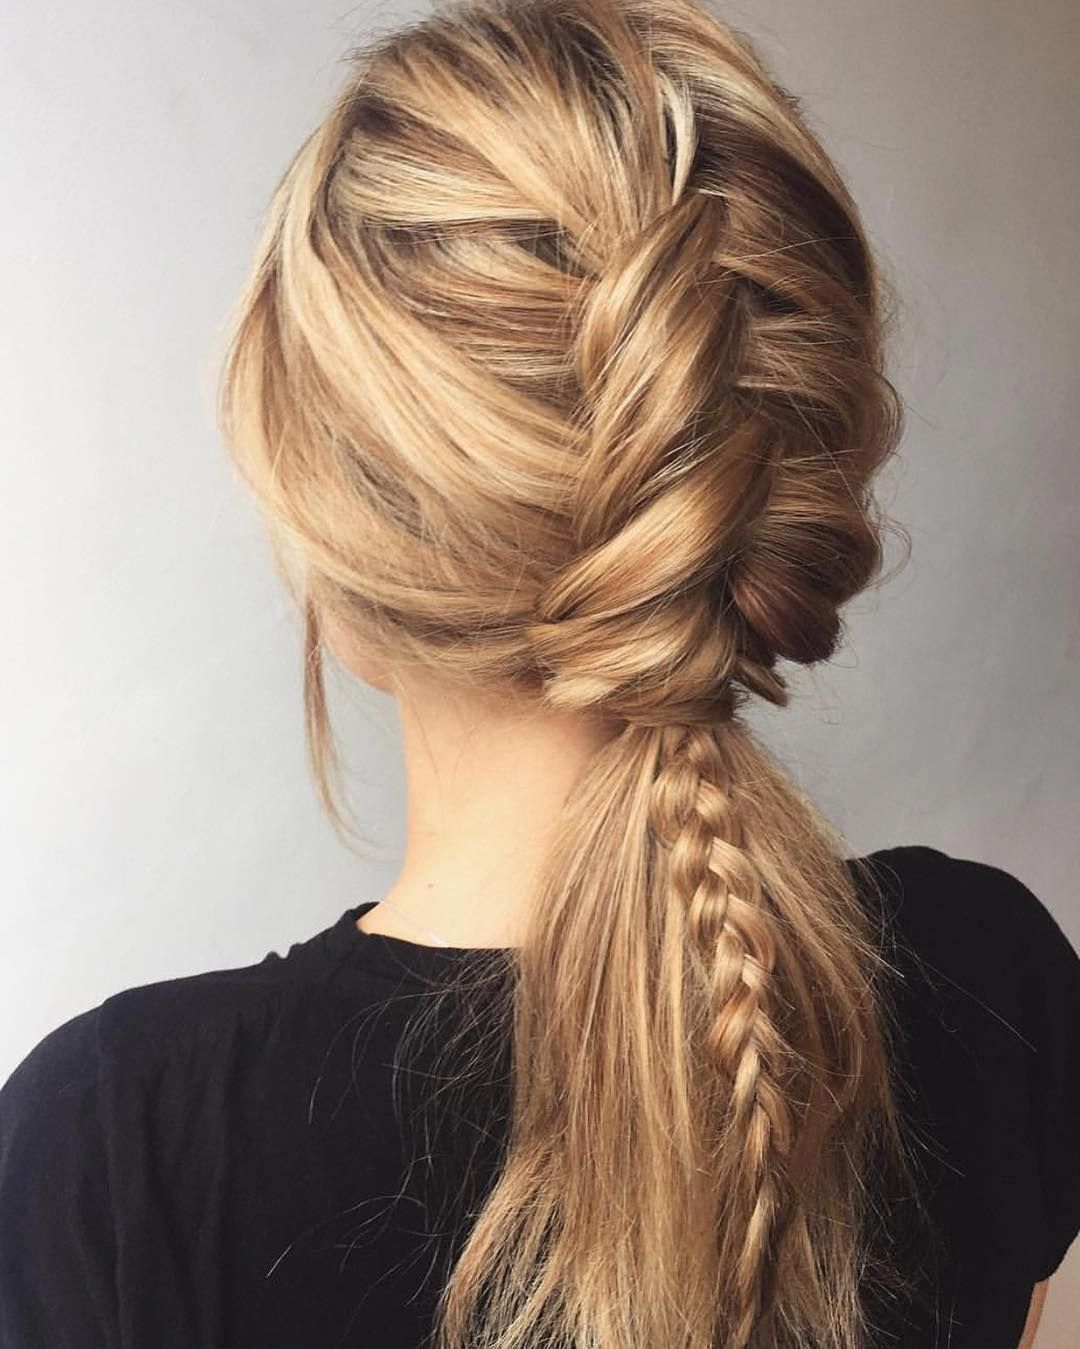 braid ponytail hairstyles for long hair, ponytail long hairstyle